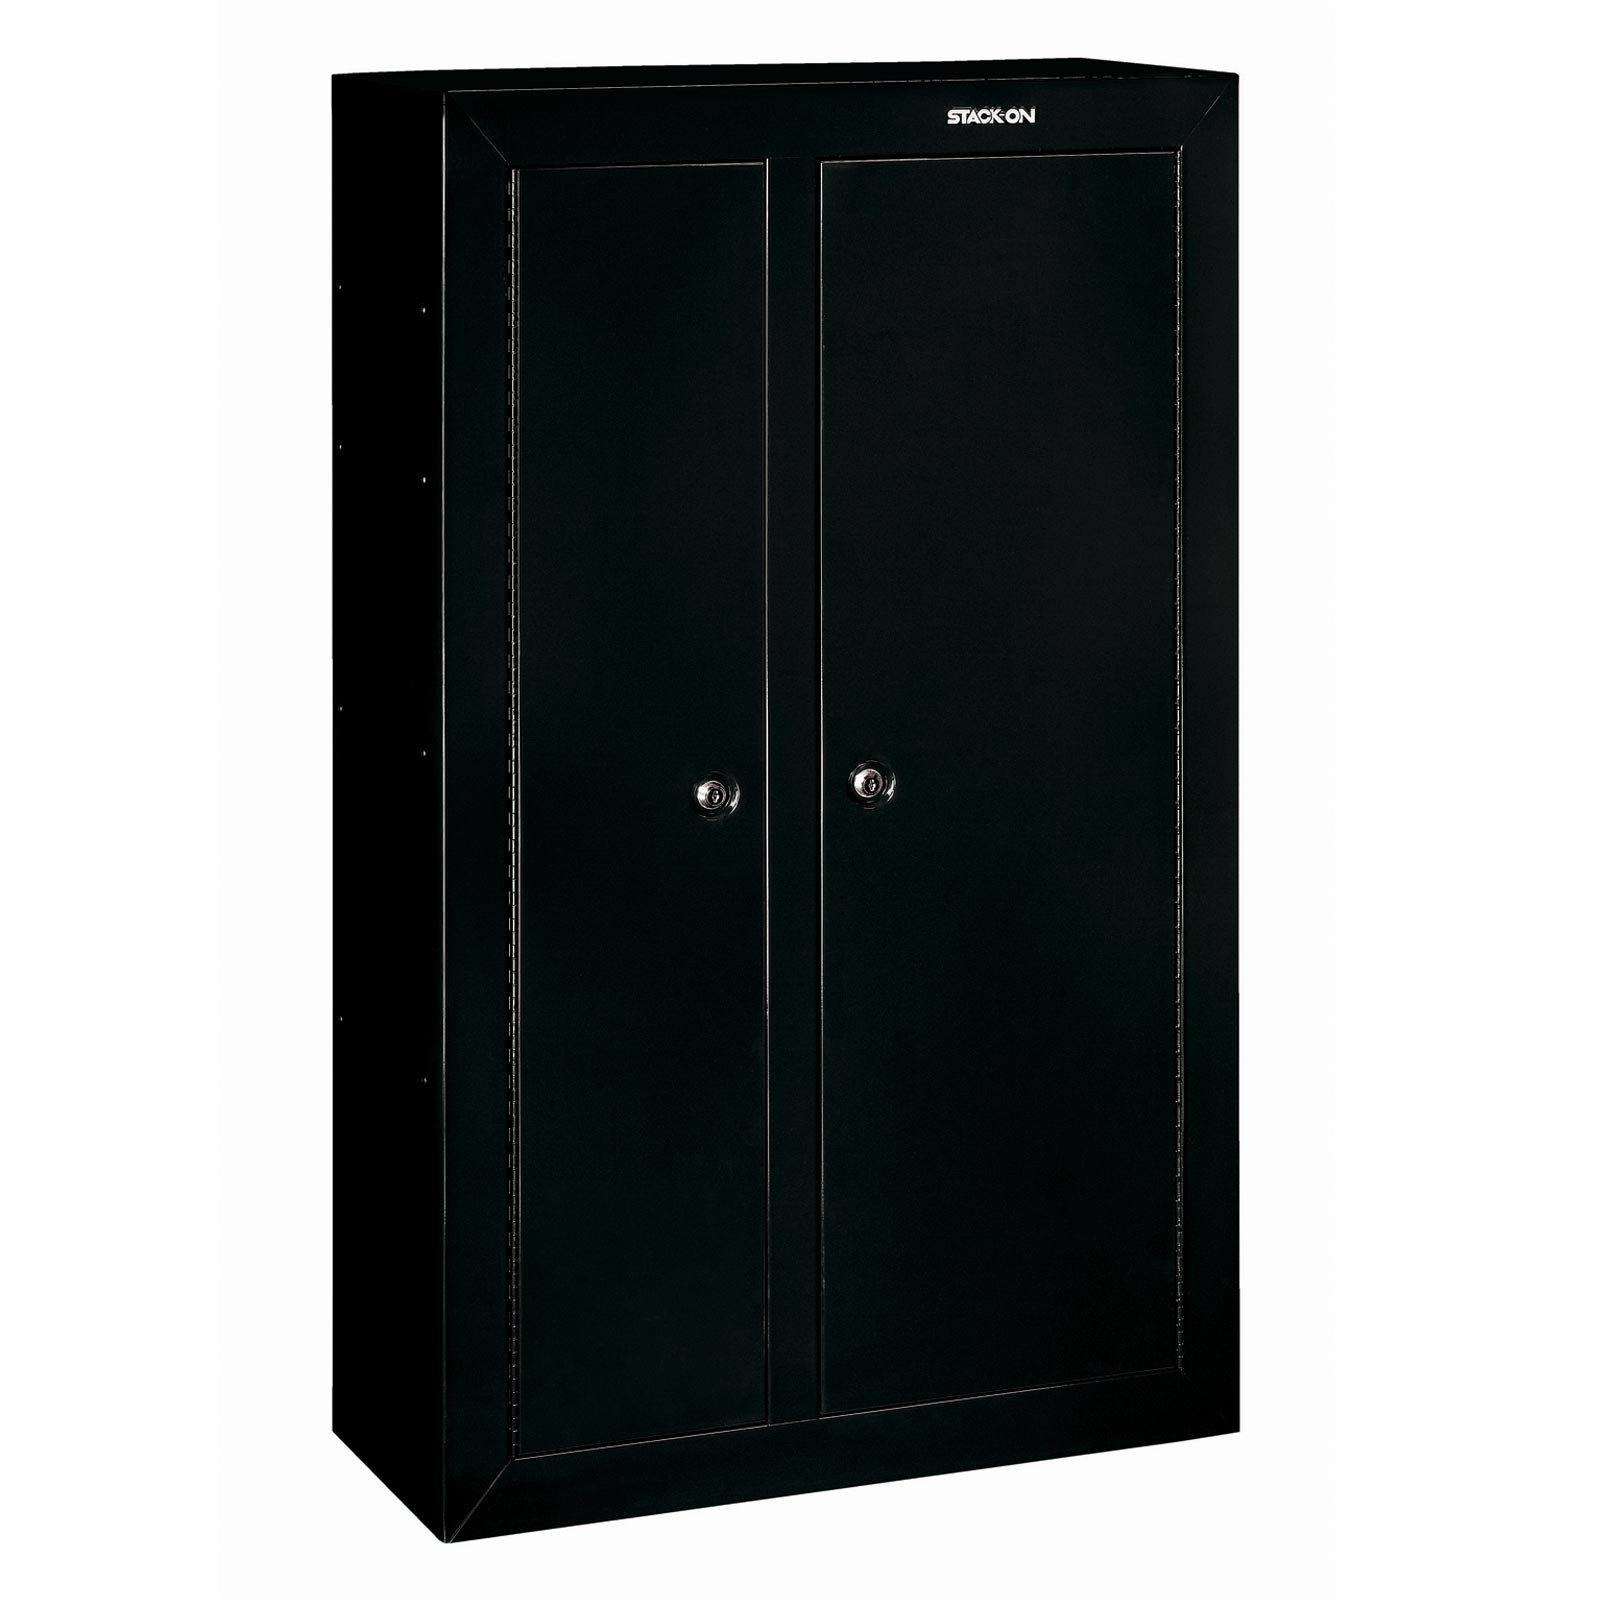 Stack on gcdb 924 gun cabinet double door steel security for 10 gun double door steel security cabinet